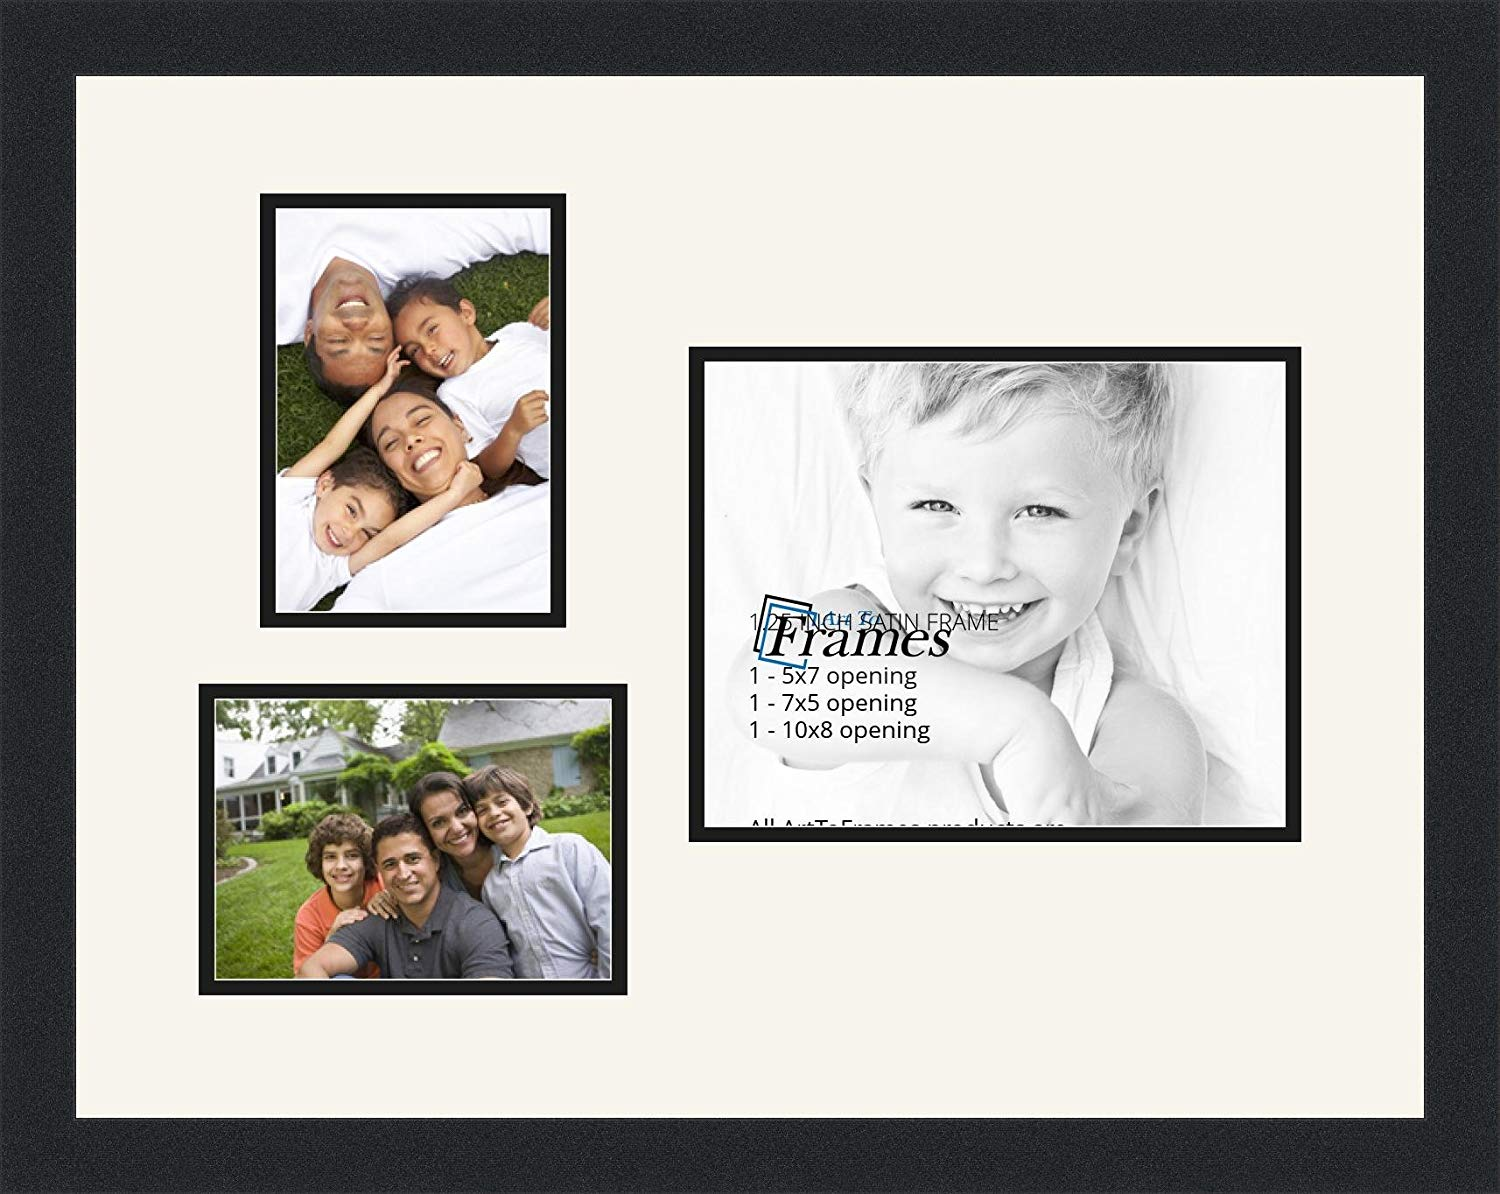 Cheap 8x10 5x7 Collage Frame Find 8x10 5x7 Collage Frame Deals On